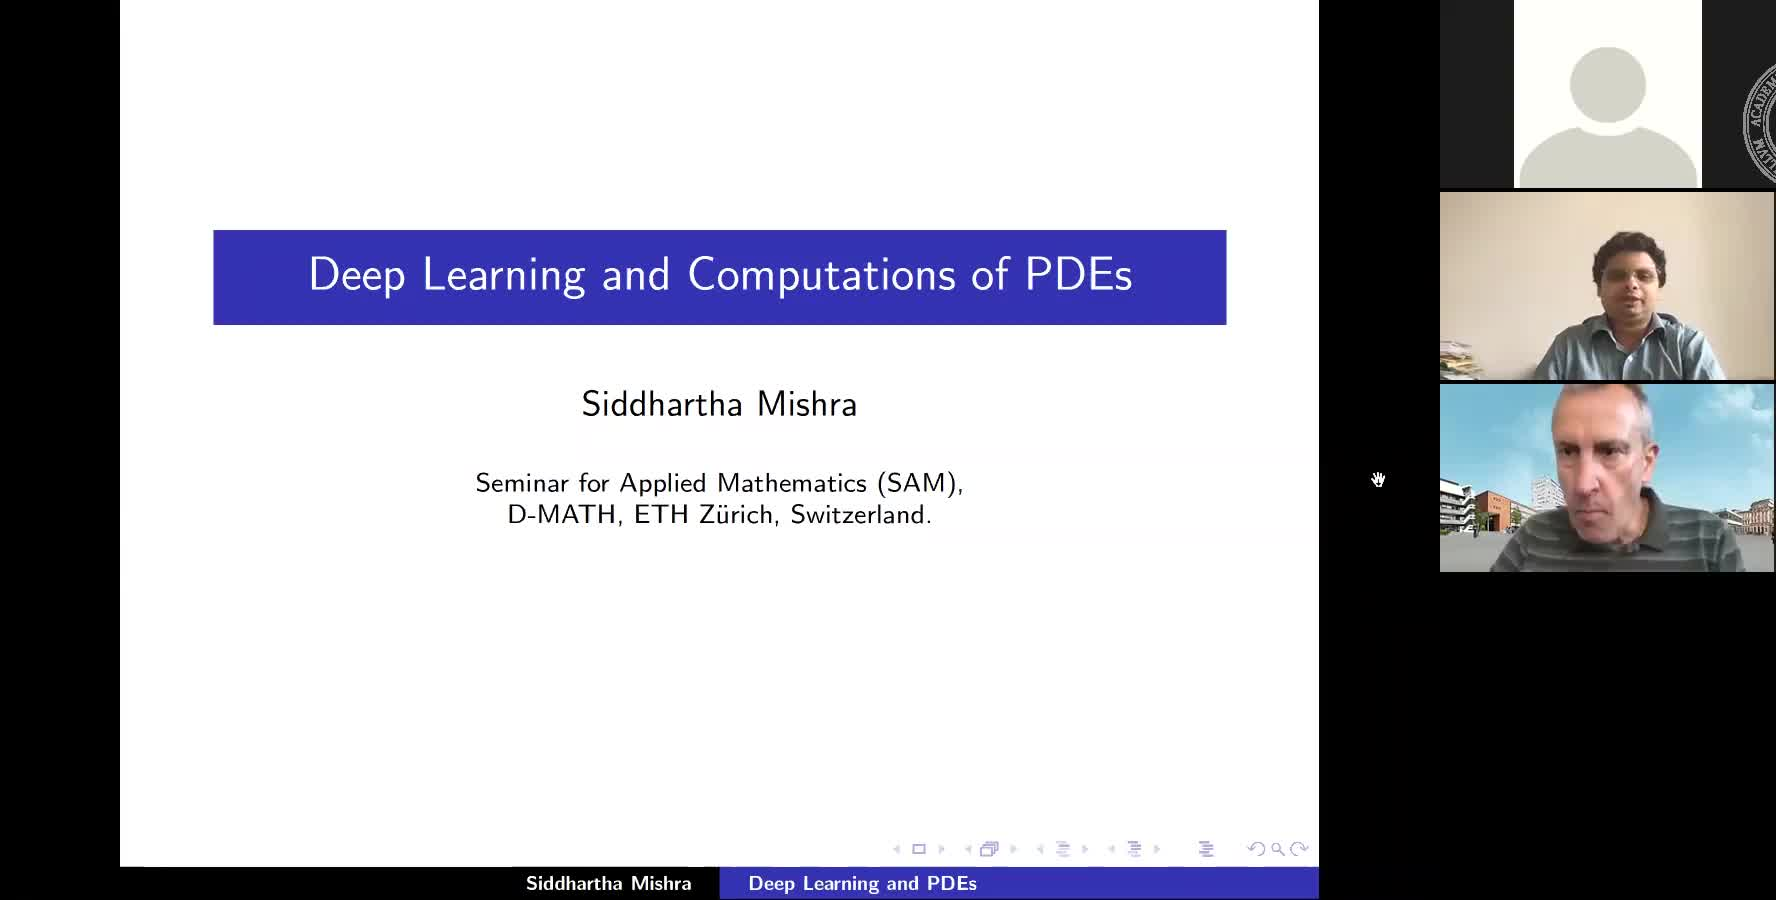 Deep Learning and Computations of PDEs preview image